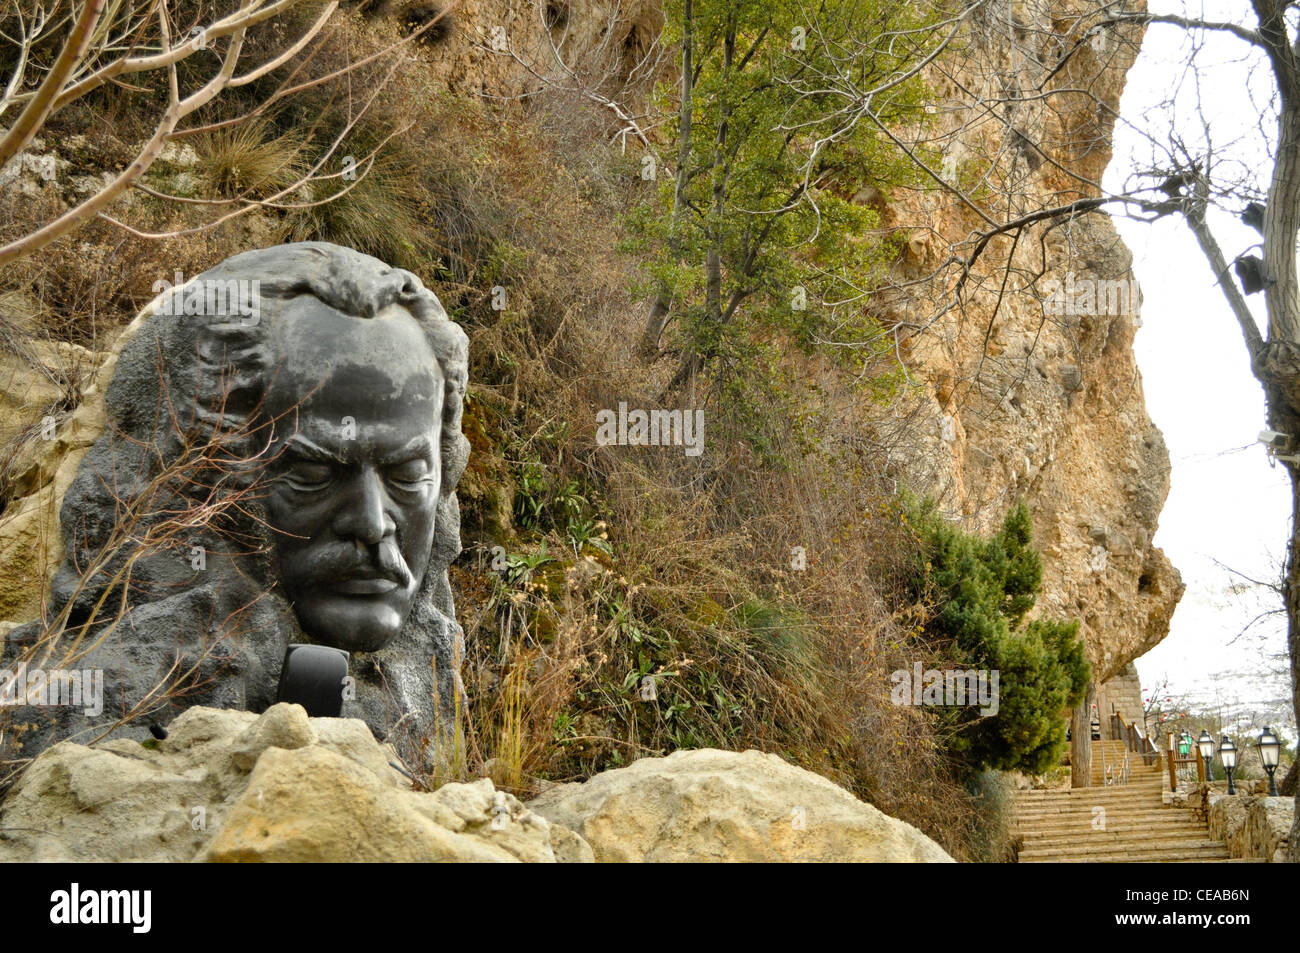 The Khalil Gibran Museum and Gibran's final resting place in Bsharri, Lebanon - Stock Image